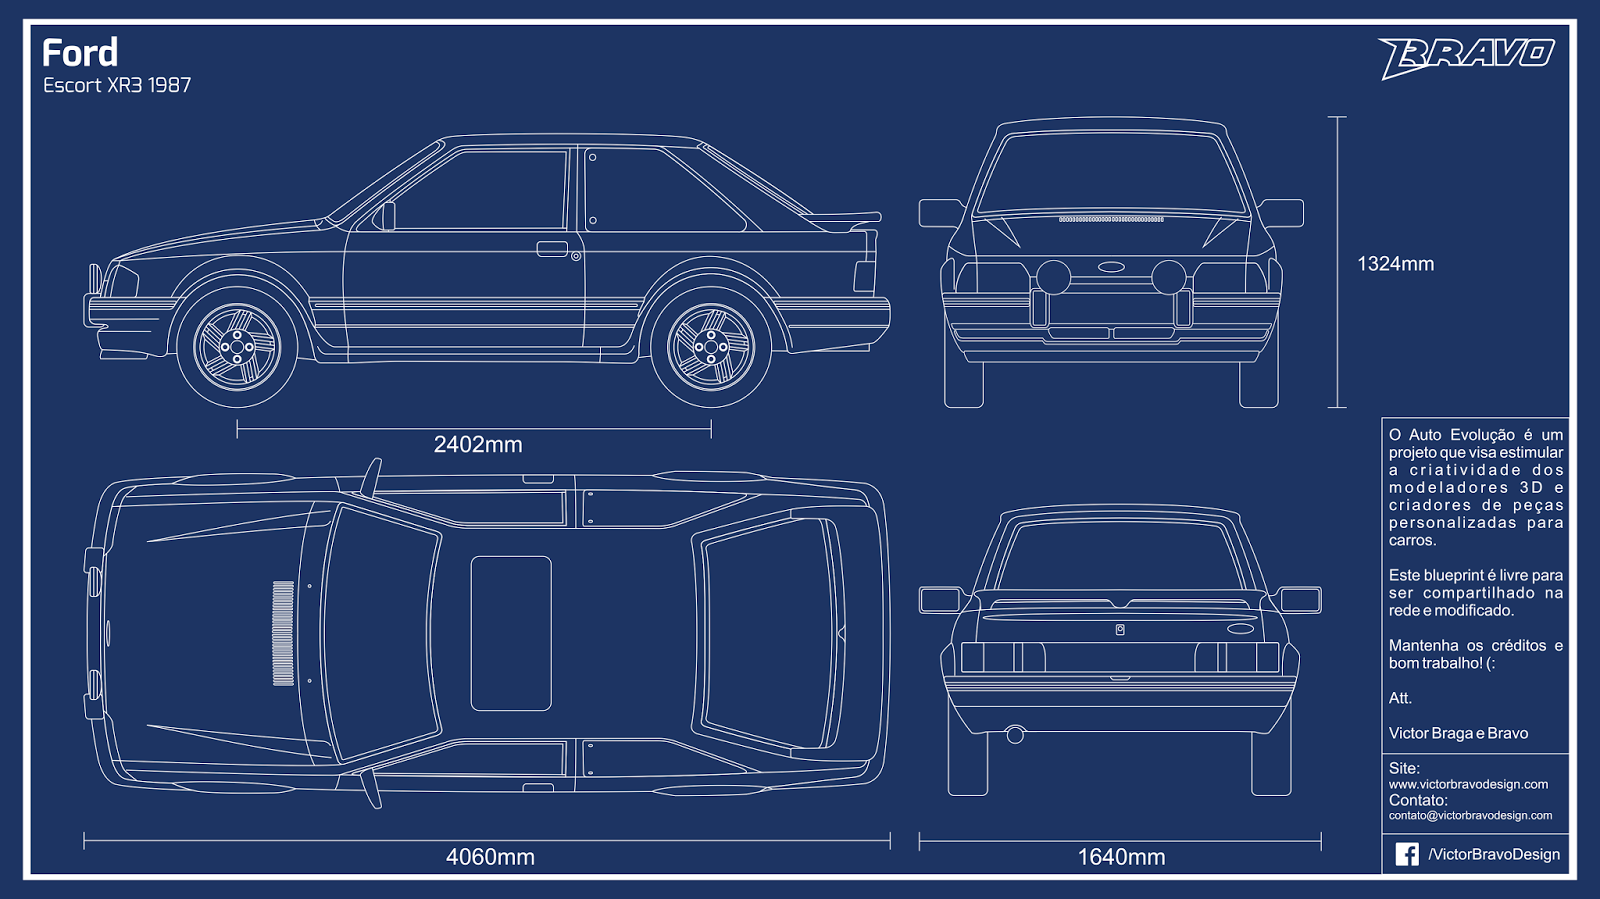 Imagem do blueprint do Ford Escort XR3 1987